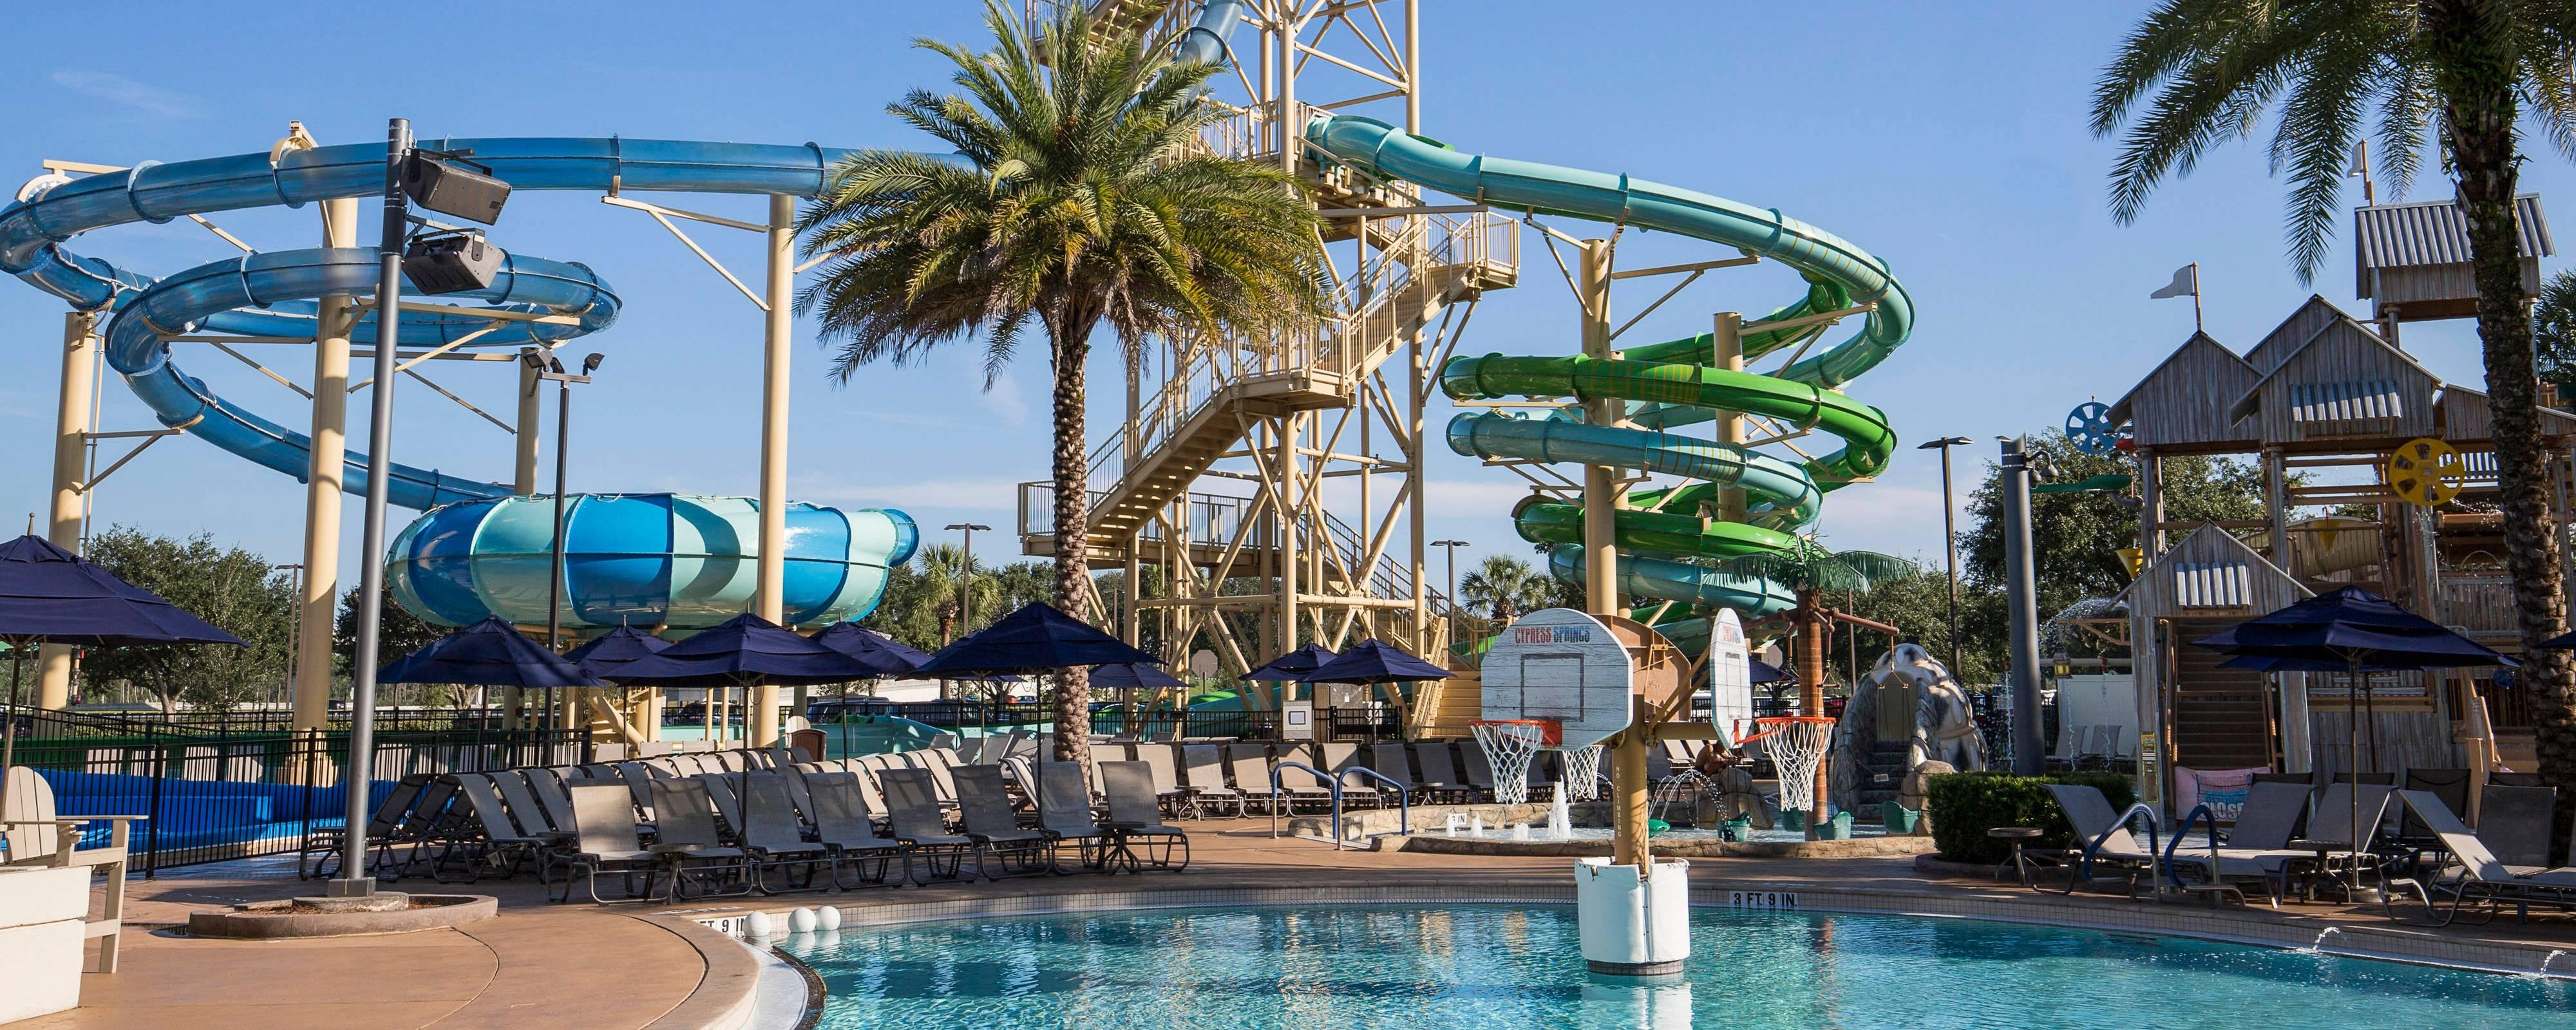 Kissimmee Florida Family Resorts Gaylord Palms Resort